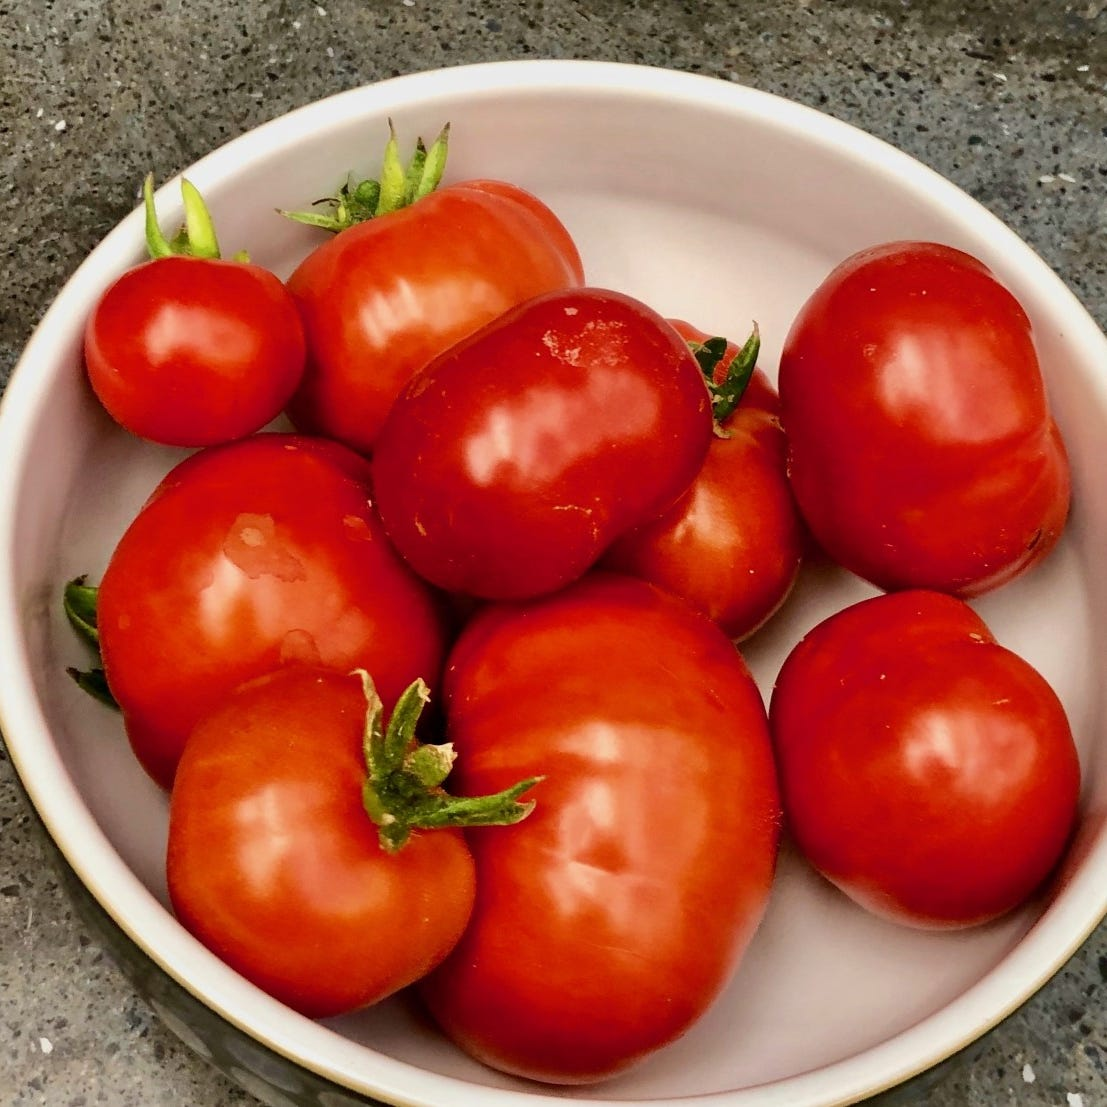 Is a tomato a fruit or vegetable? Depends on who you ask